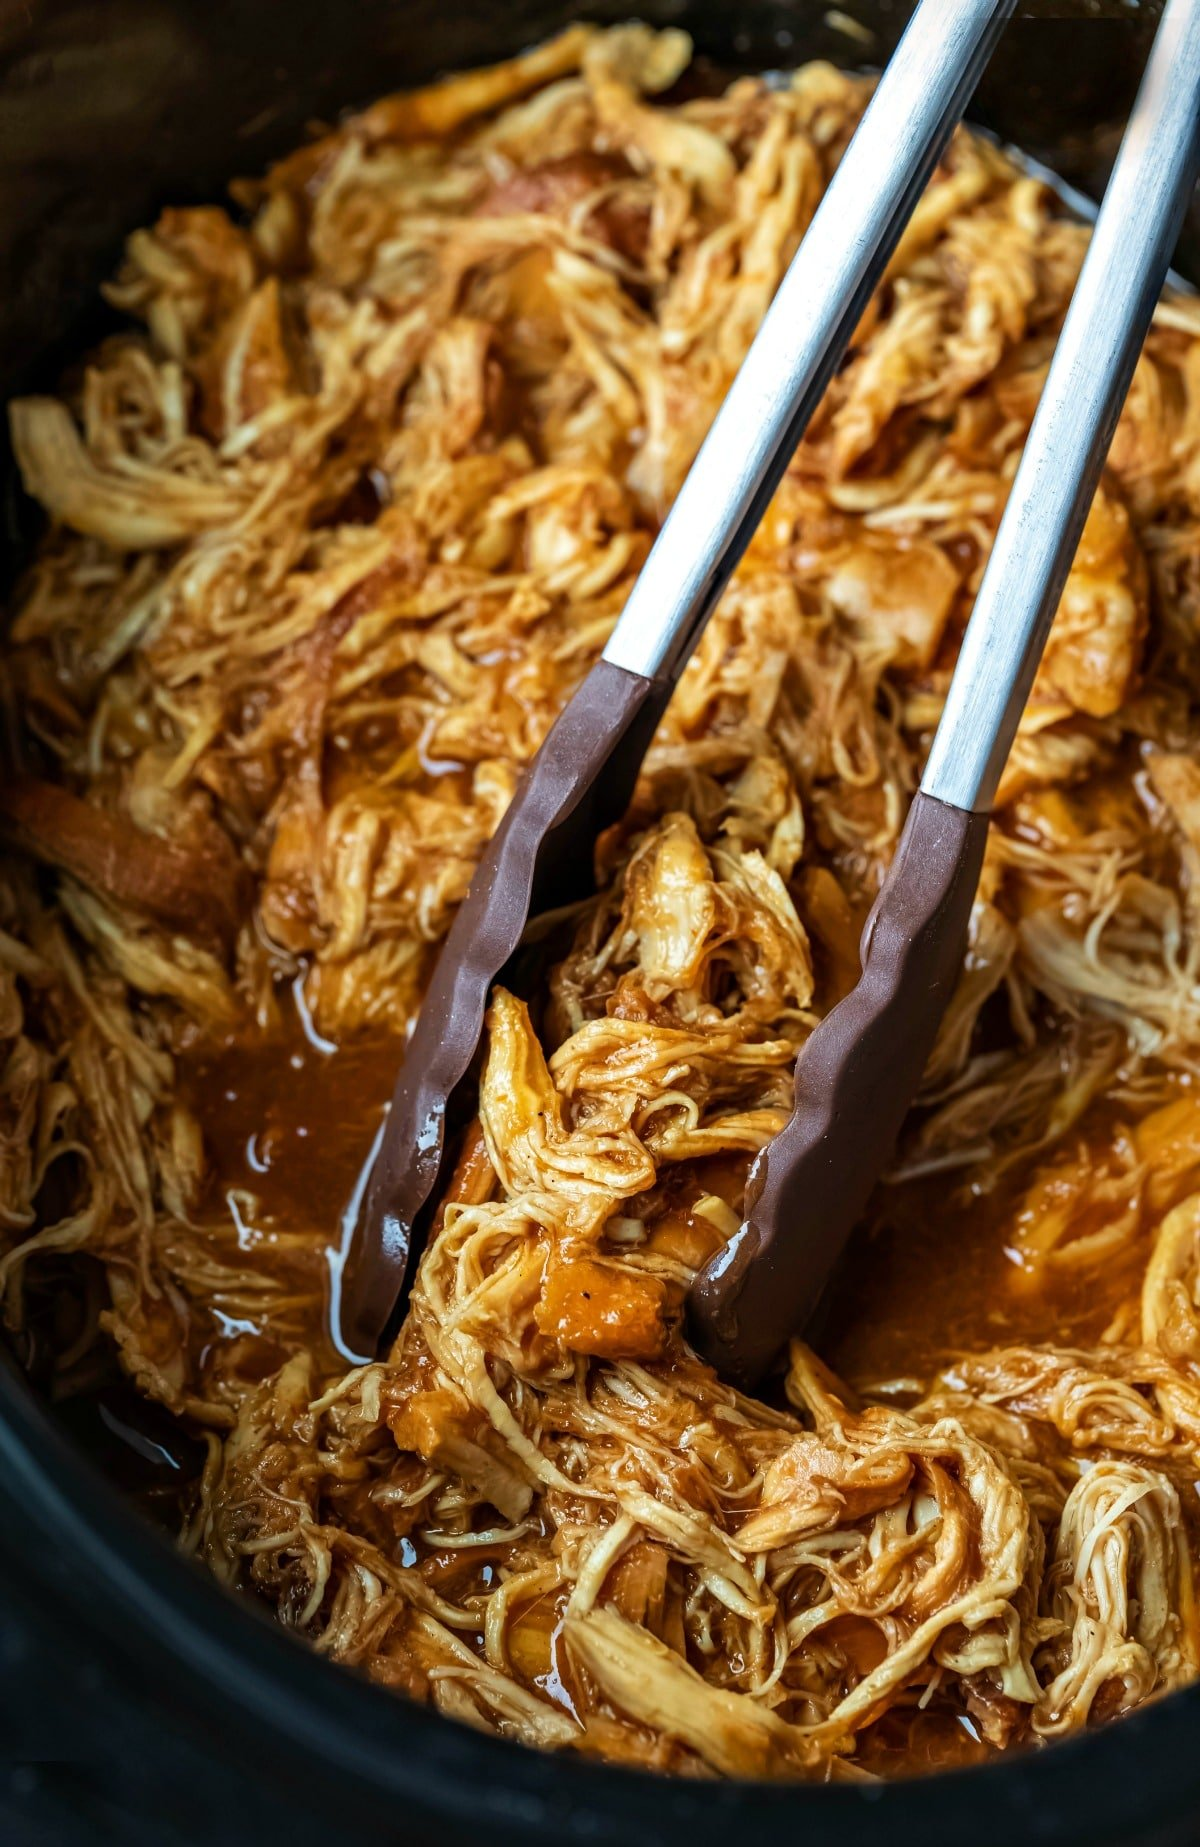 Tongs grabbing crock pot brown sugar bourbon bbq chicken in a crock pot